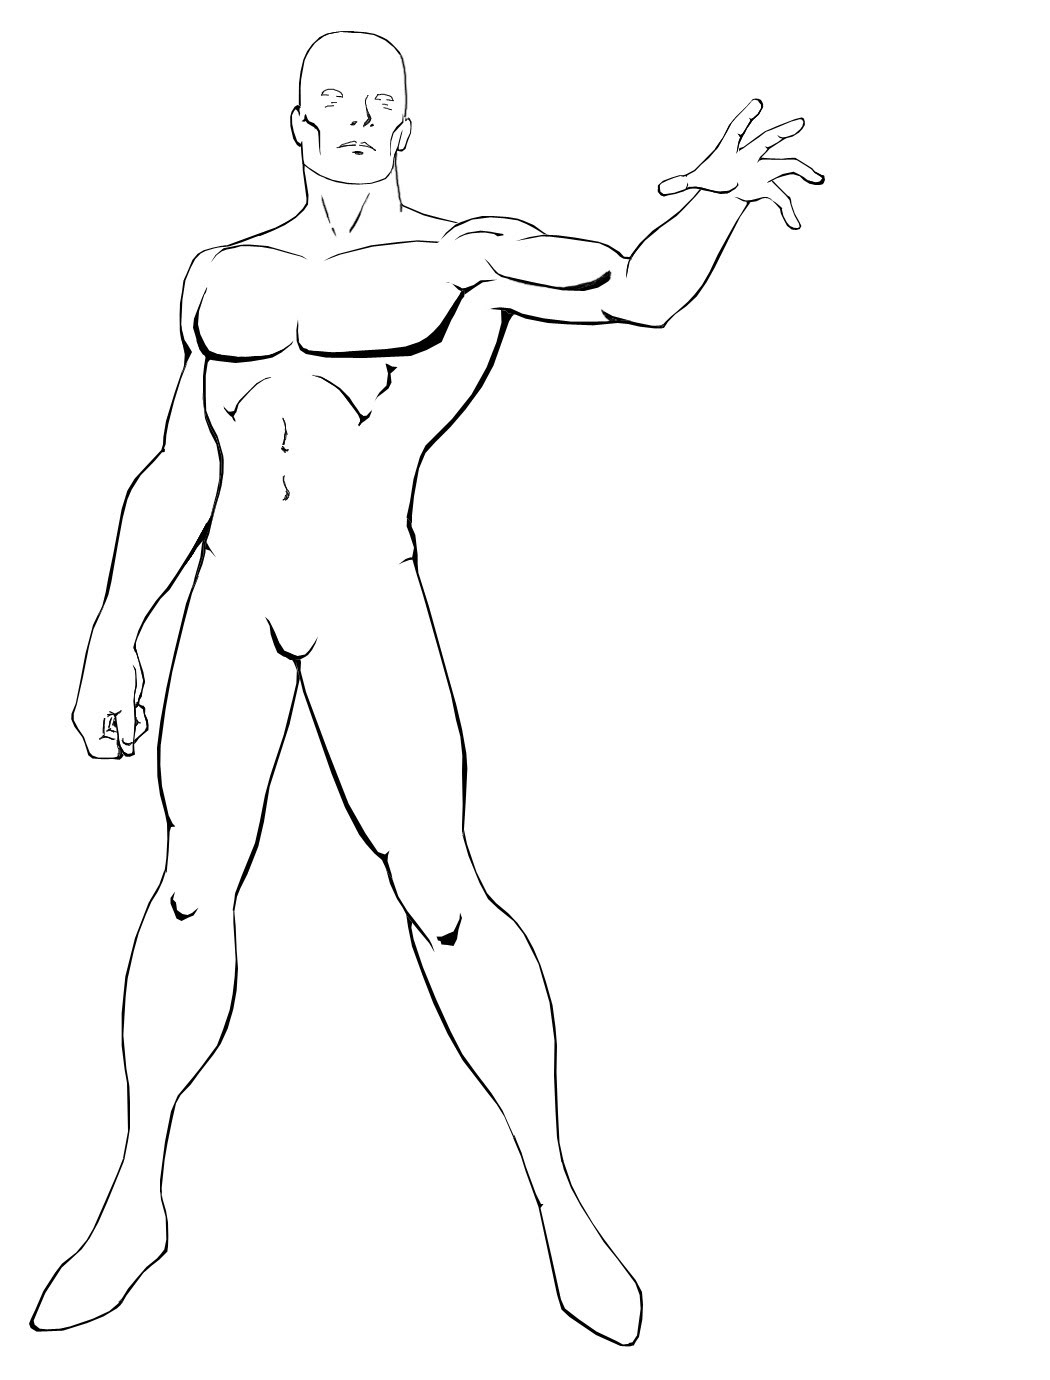 1050x1380 body outline drawing outline drawing of human body character or